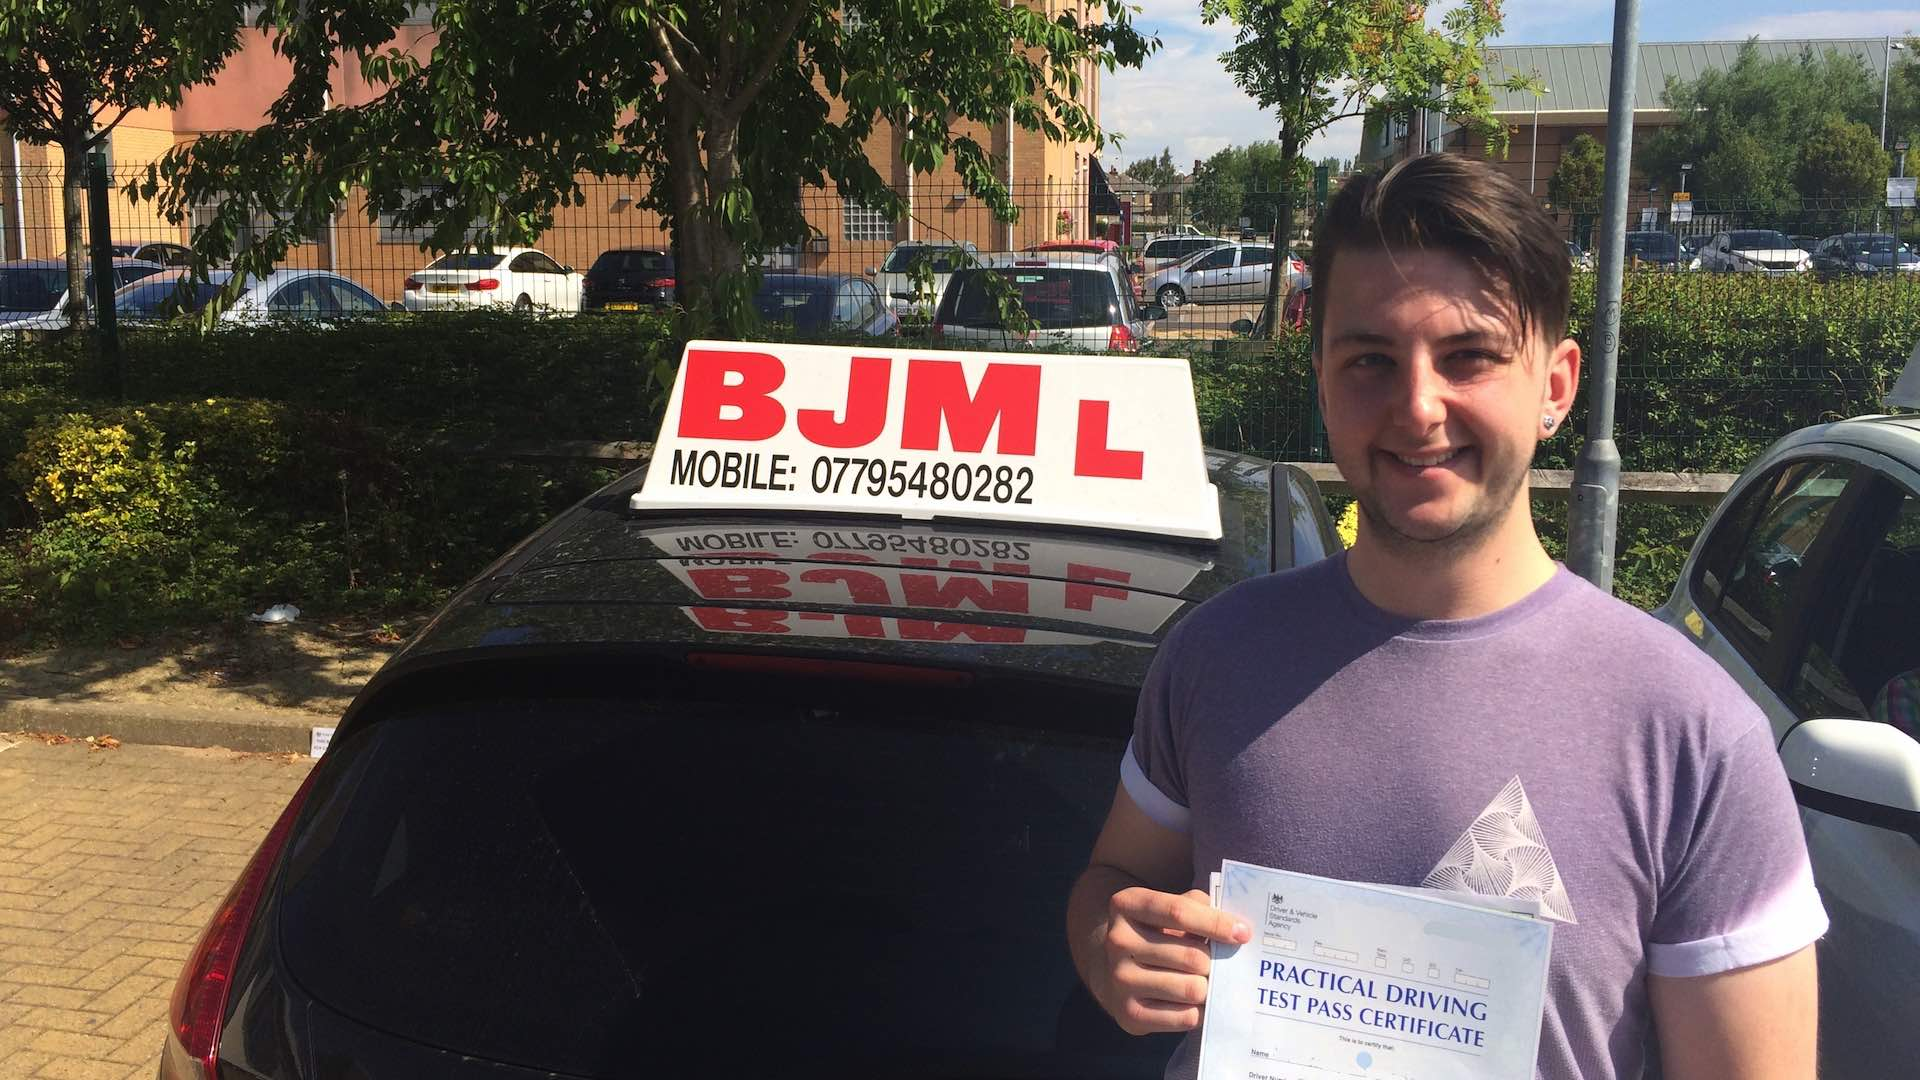 BJM School of Motoring, Bradford's first choice of driving for excellence. BJM Drivings Lessons Bradford Call: 07795480282 21st May Pass 1